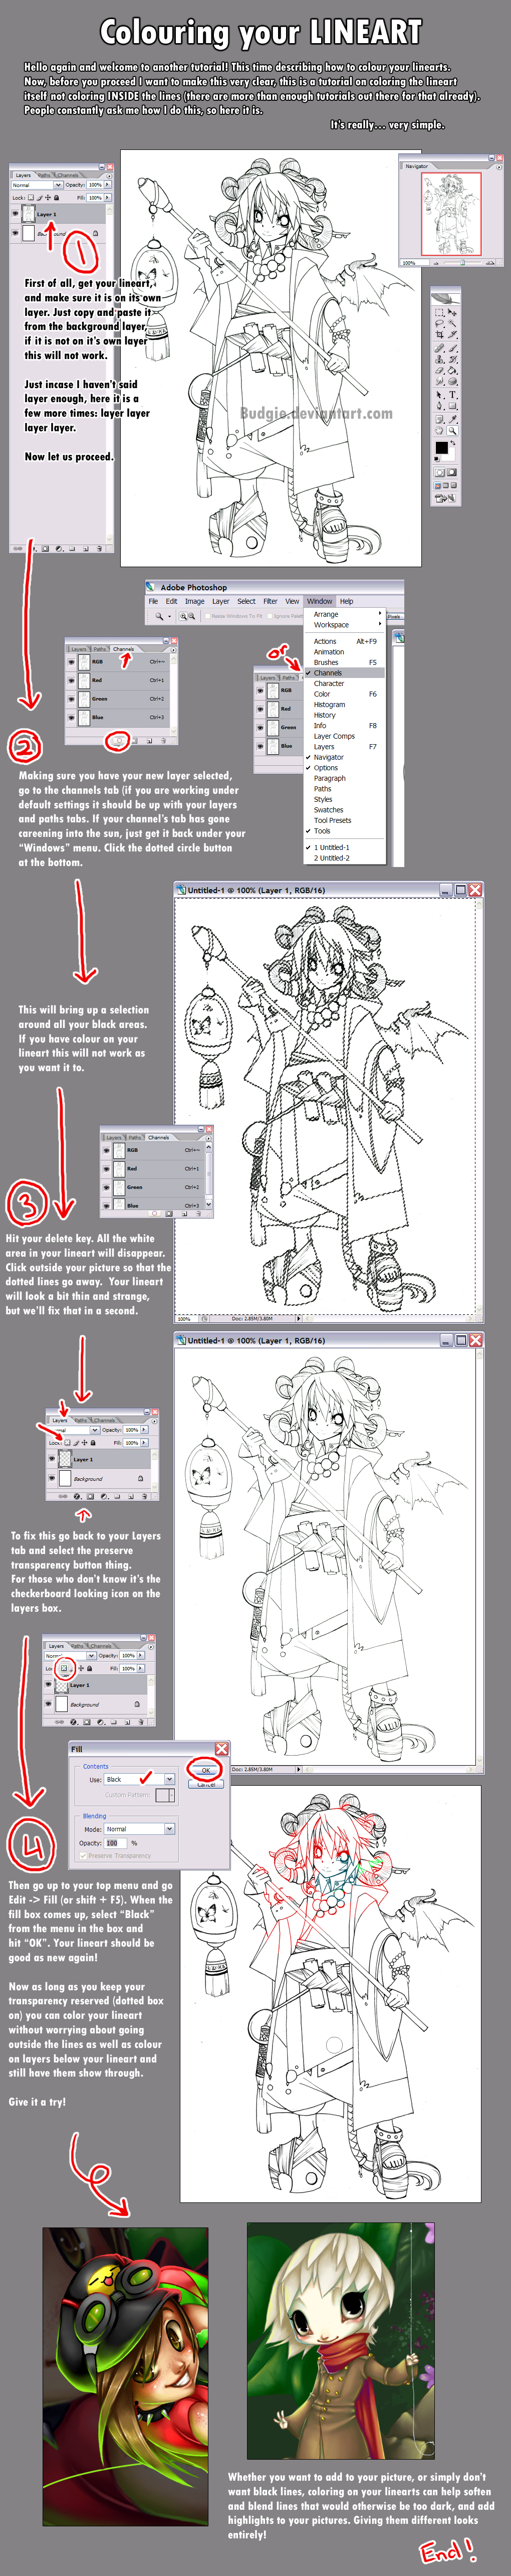 Lineart colour tutorial by sambees on deviantart easy lineart colour tutorial by sambees easy lineart colour tutorial by sambees baditri Choice Image